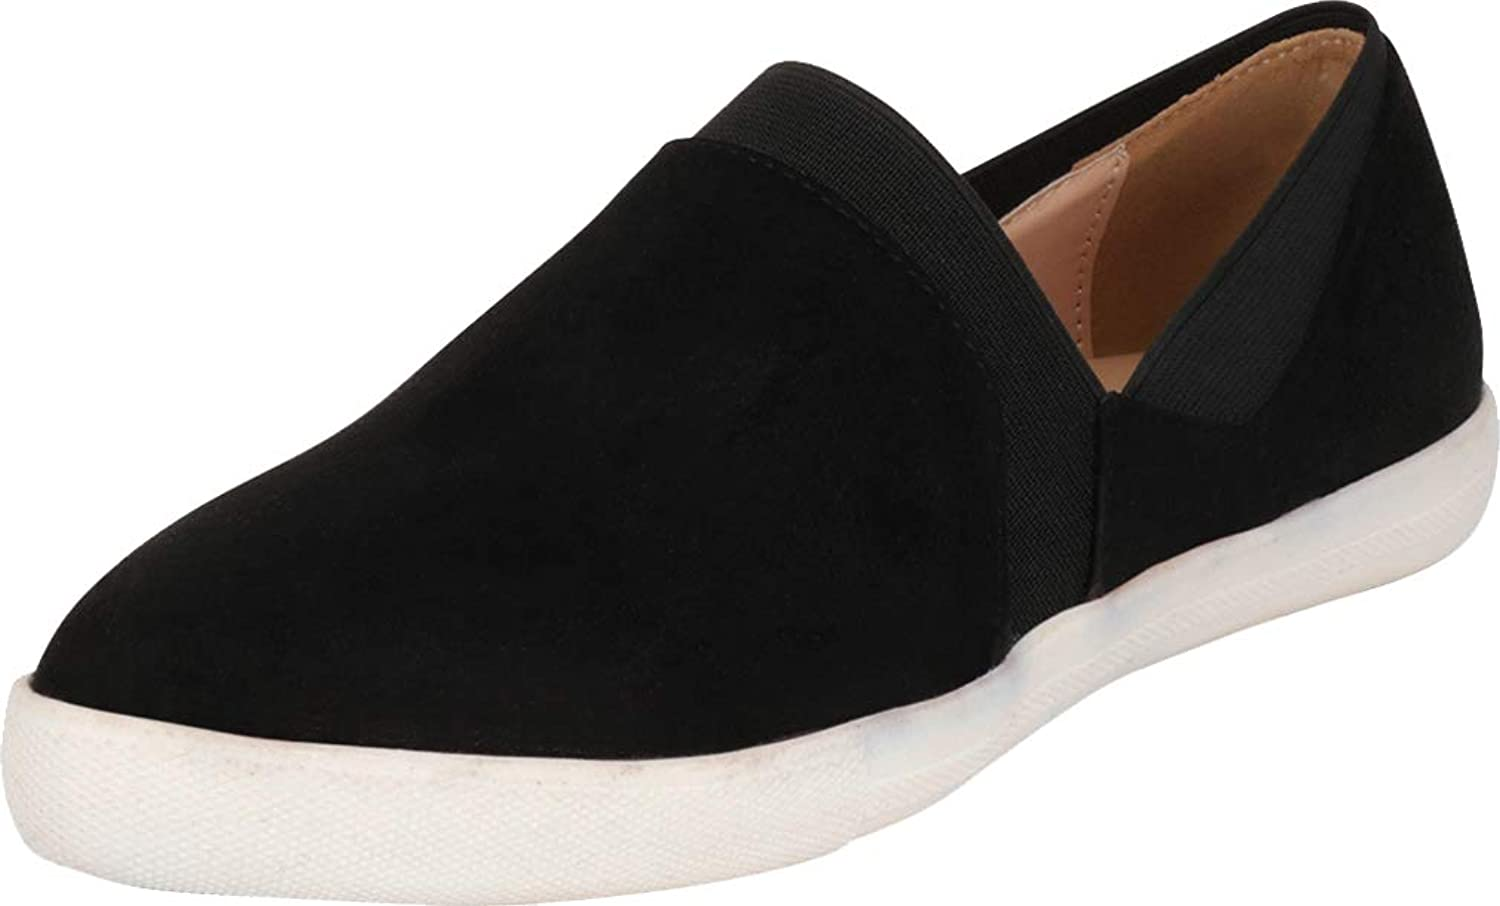 Cambridge Select Women's Pointed Toe Stretch Slip-On White Sole Fashion Sneaker